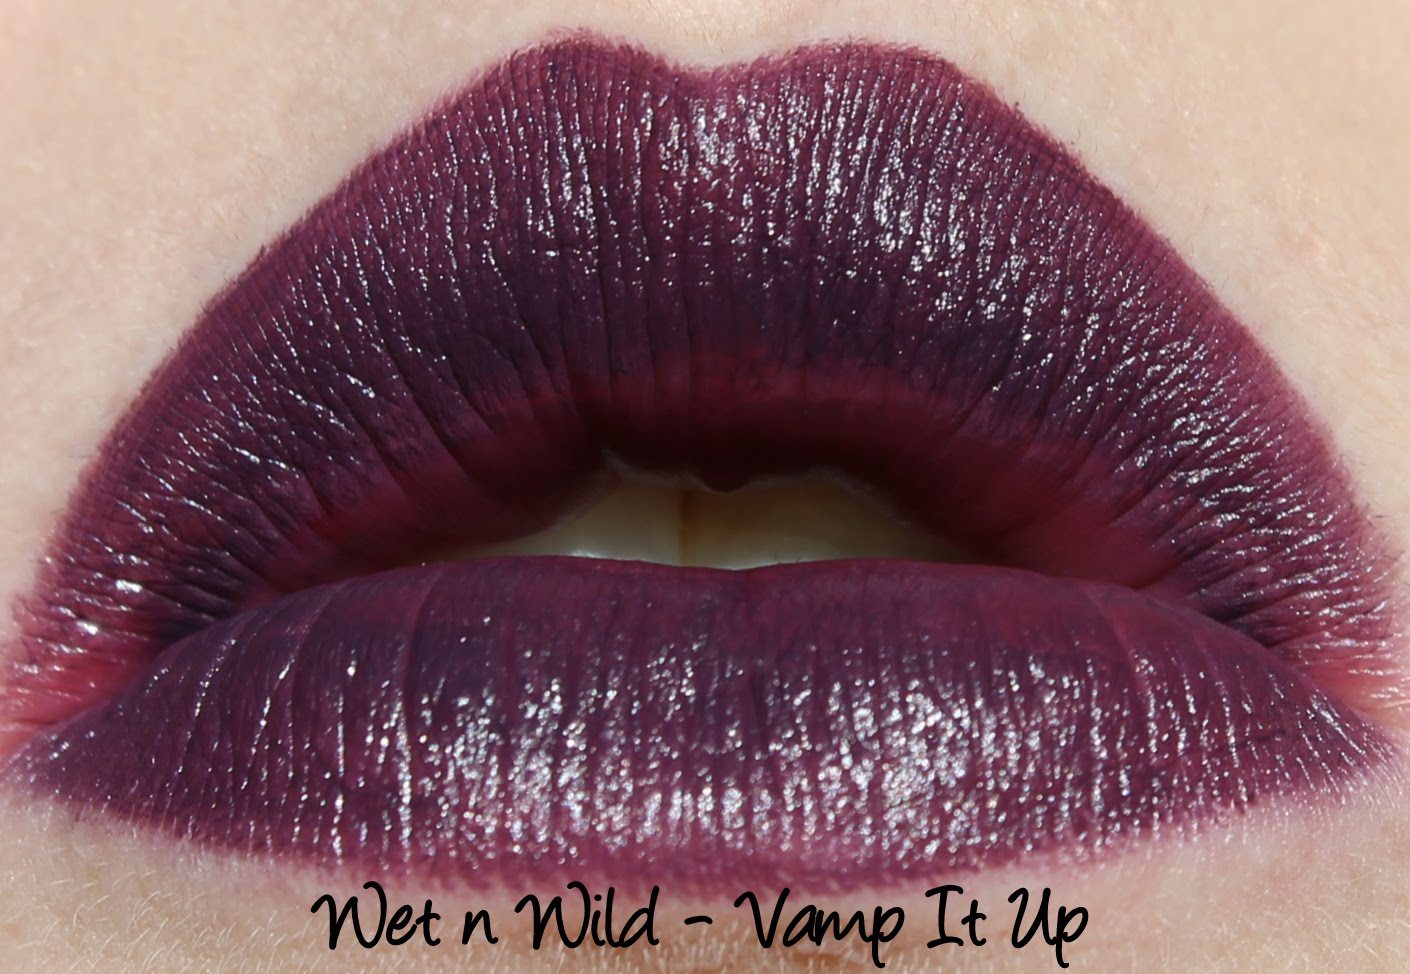 Wet n Wild Megalast - Vamp It Up lipstick swatch